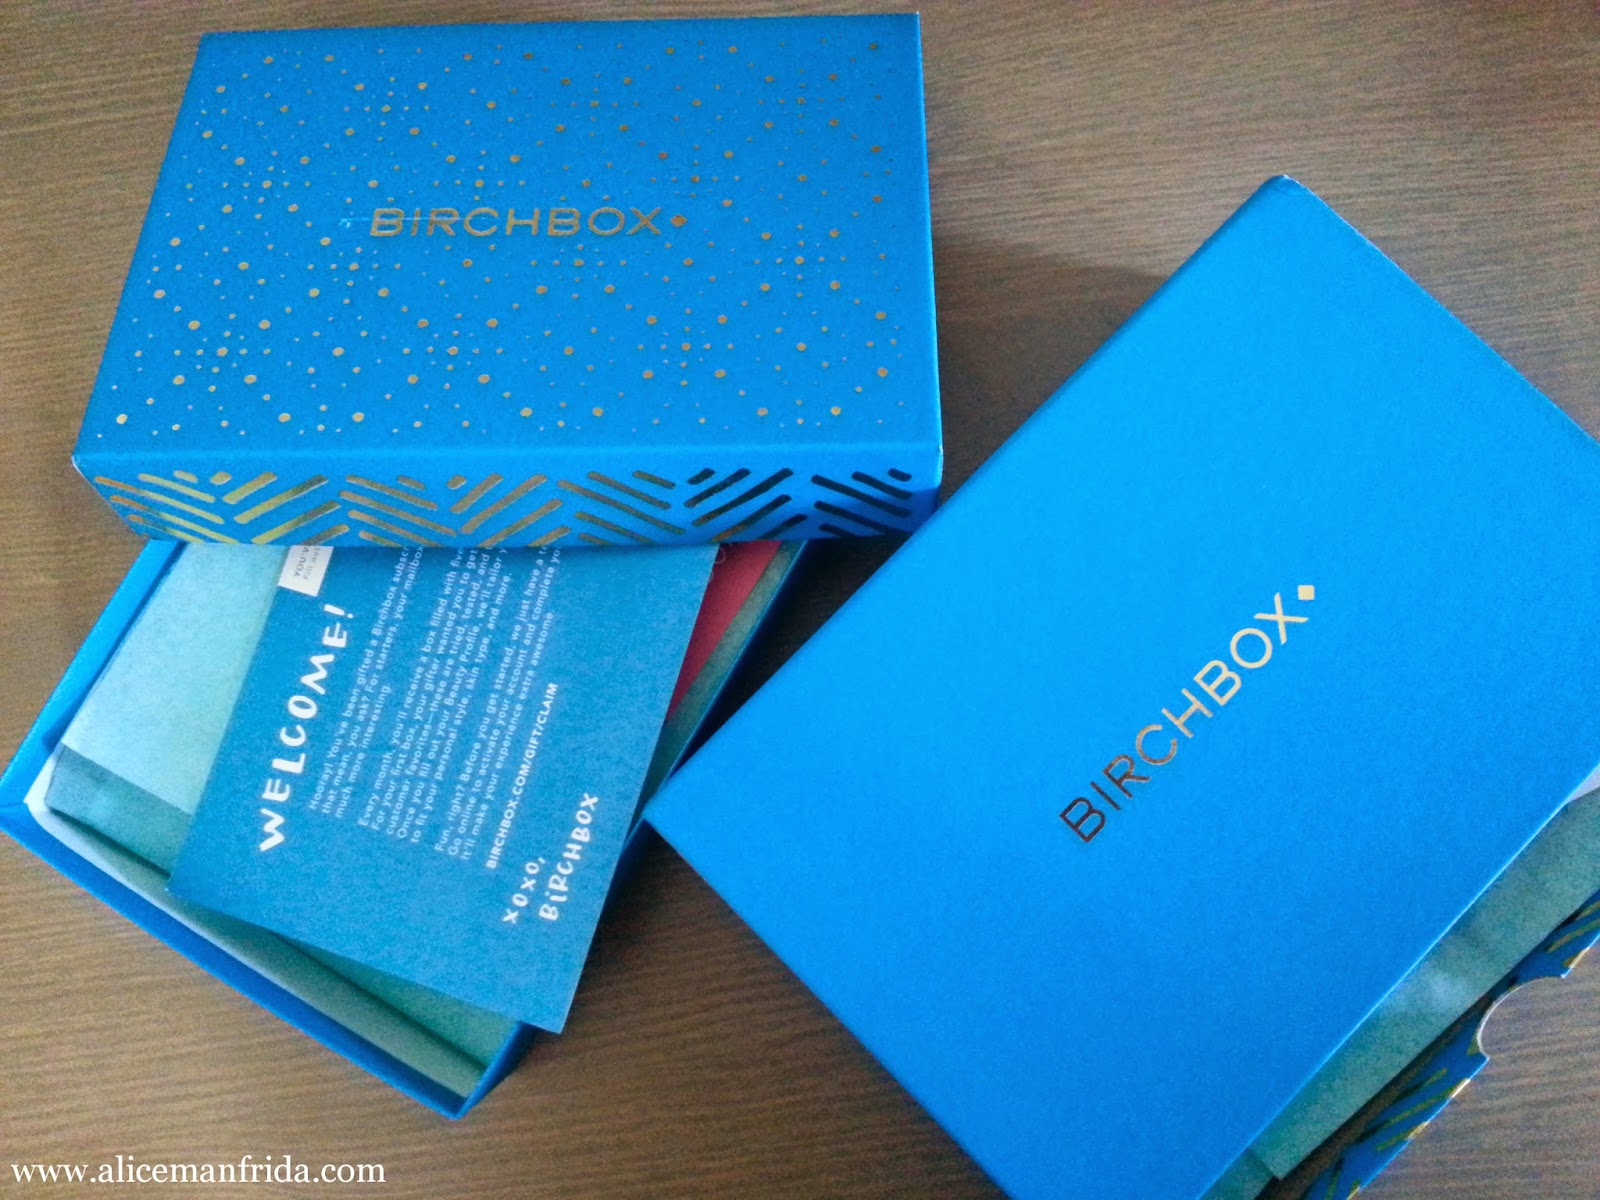 Birchbox, Men's Box, Women's Box, Beauty Subscription Box